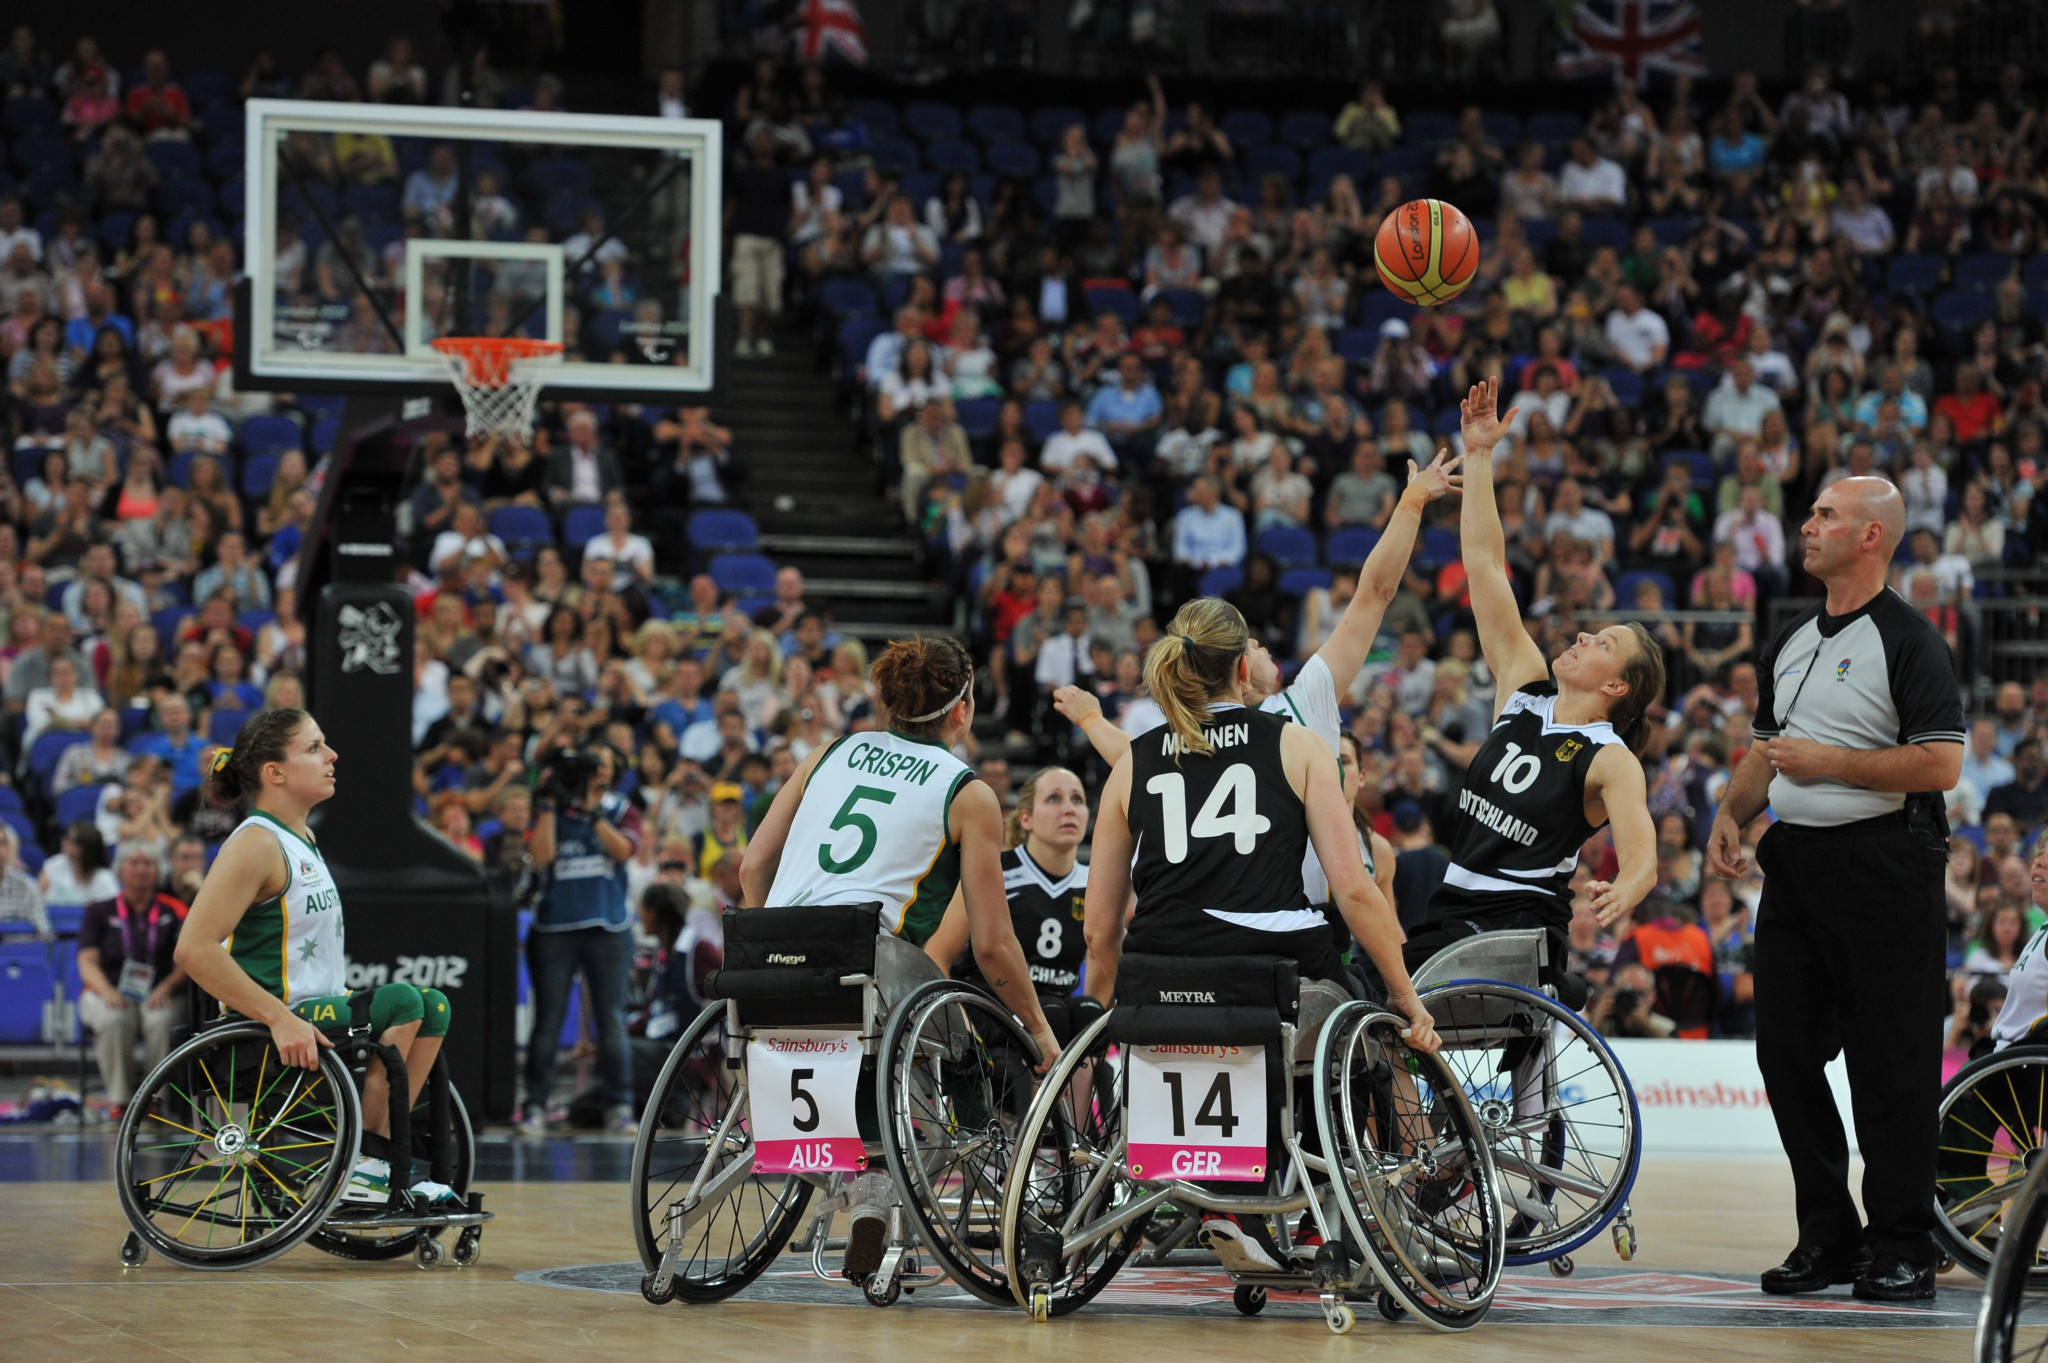 Wheelchair basketball rulebook published in Brazilian Portuguese